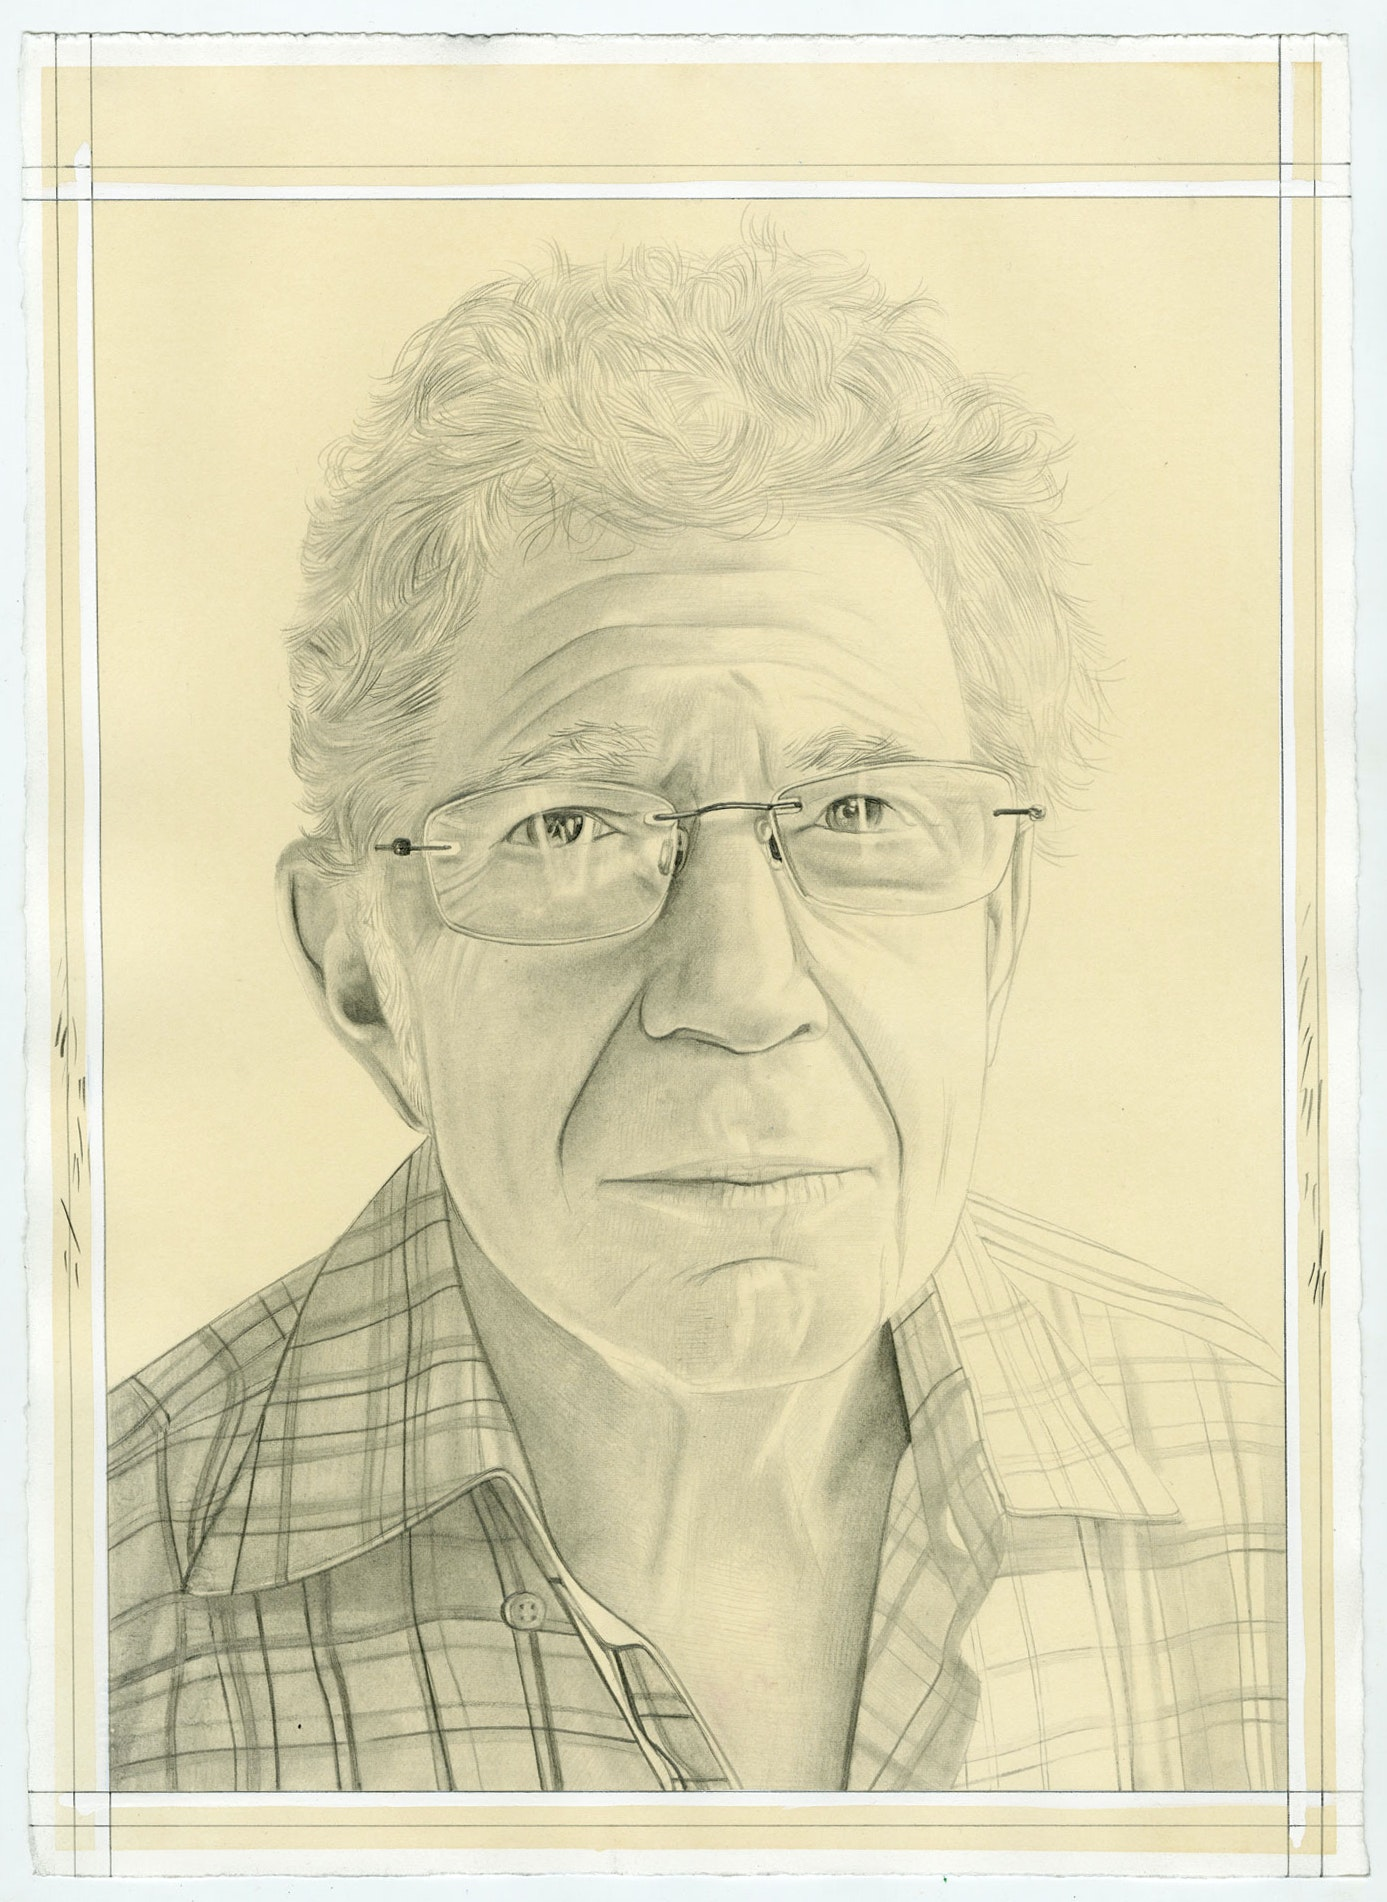 Portrait of Richard Shiff, pencil on paper by Phong Bui.